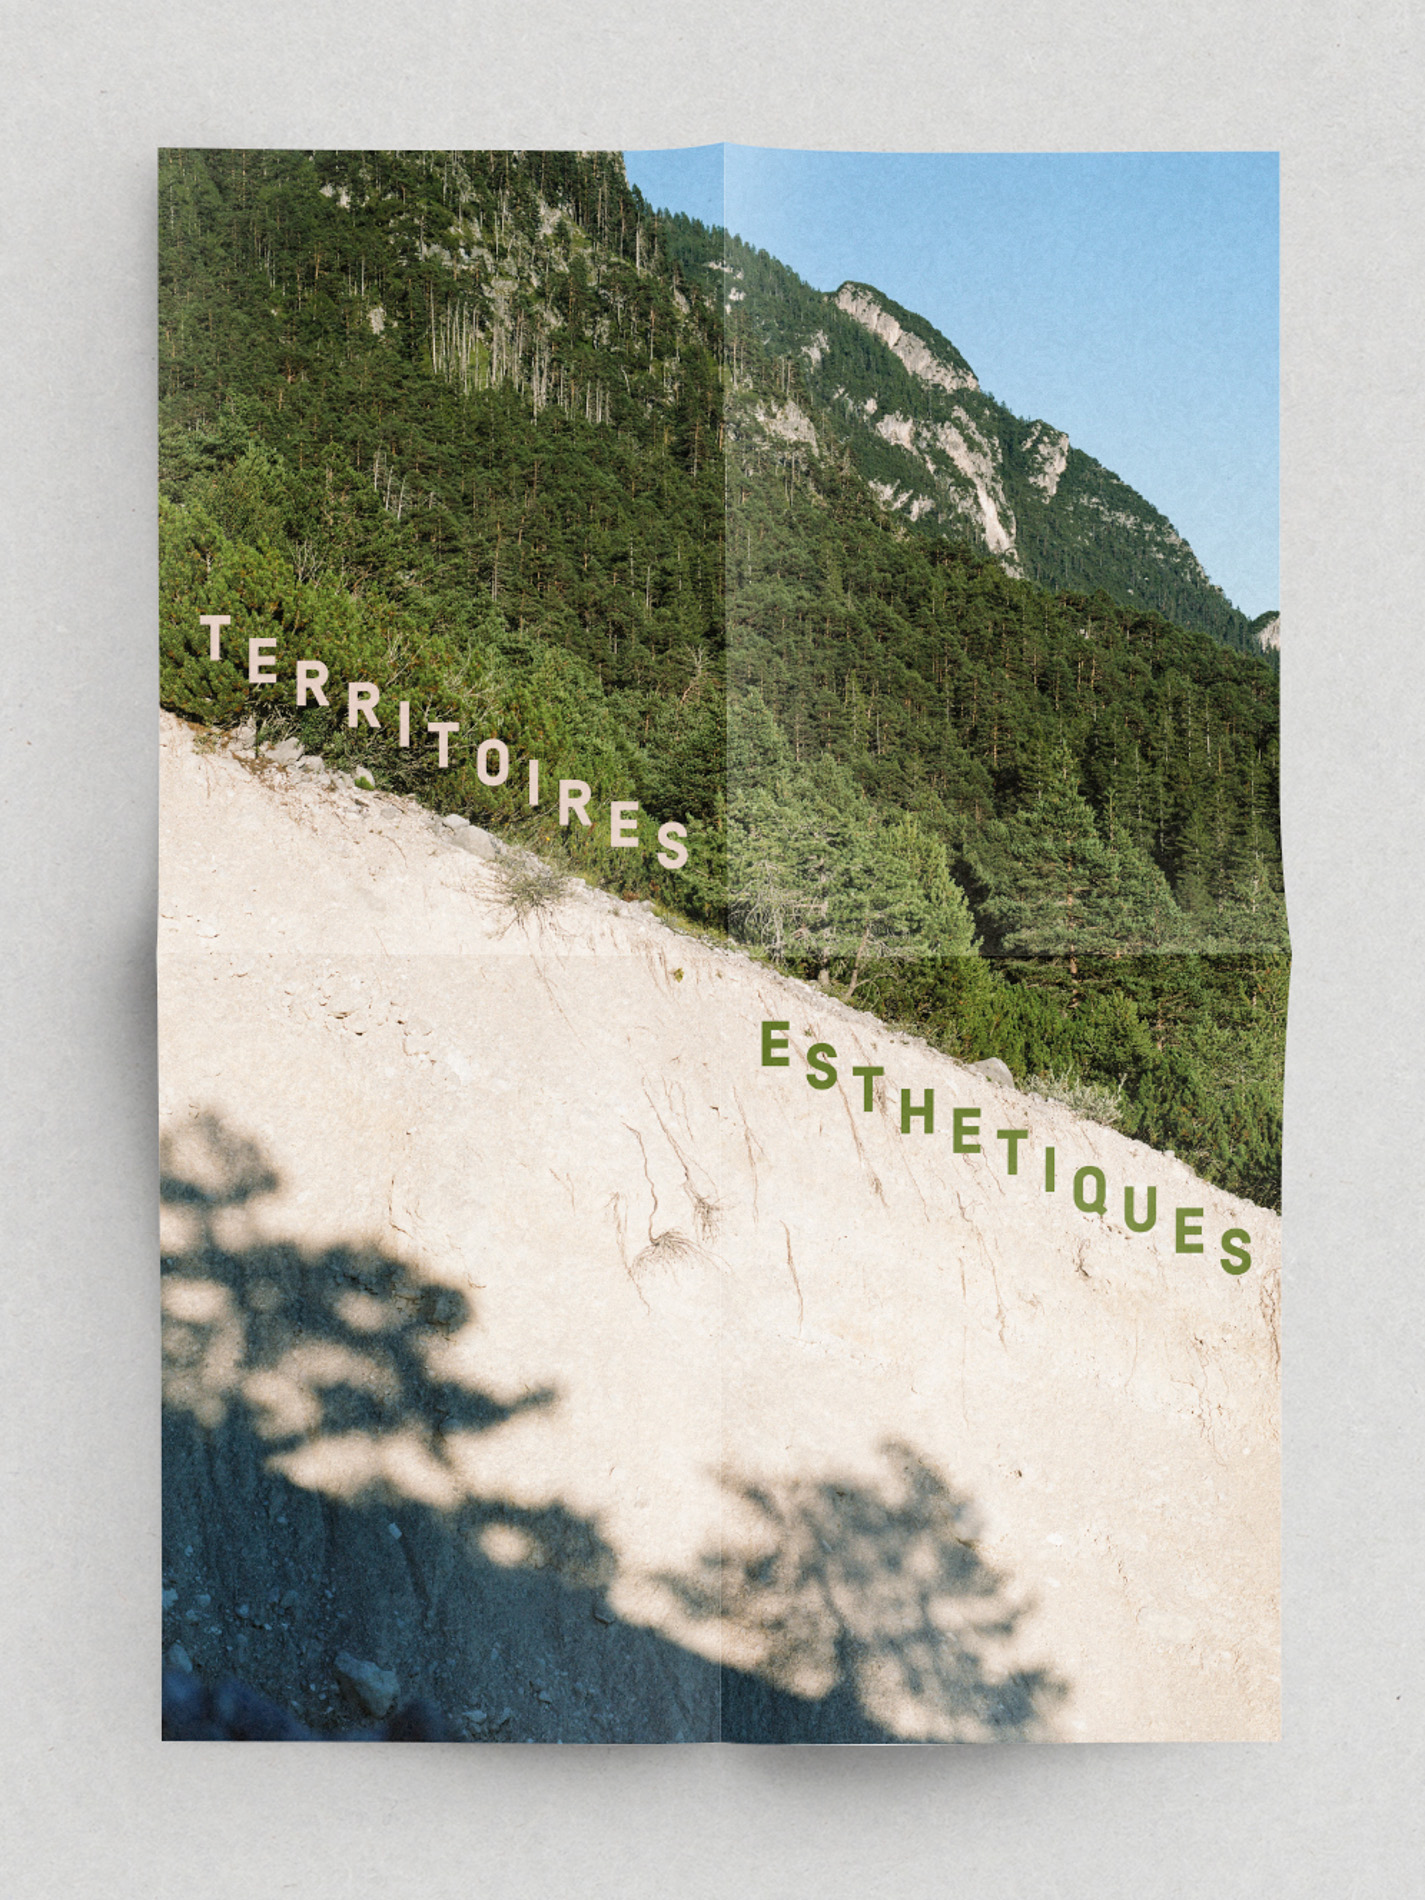 Territoires Esthétiques  2nd édition poster for lecture series | Photography Giaime Meloni | Graphic design Roberta Donatini